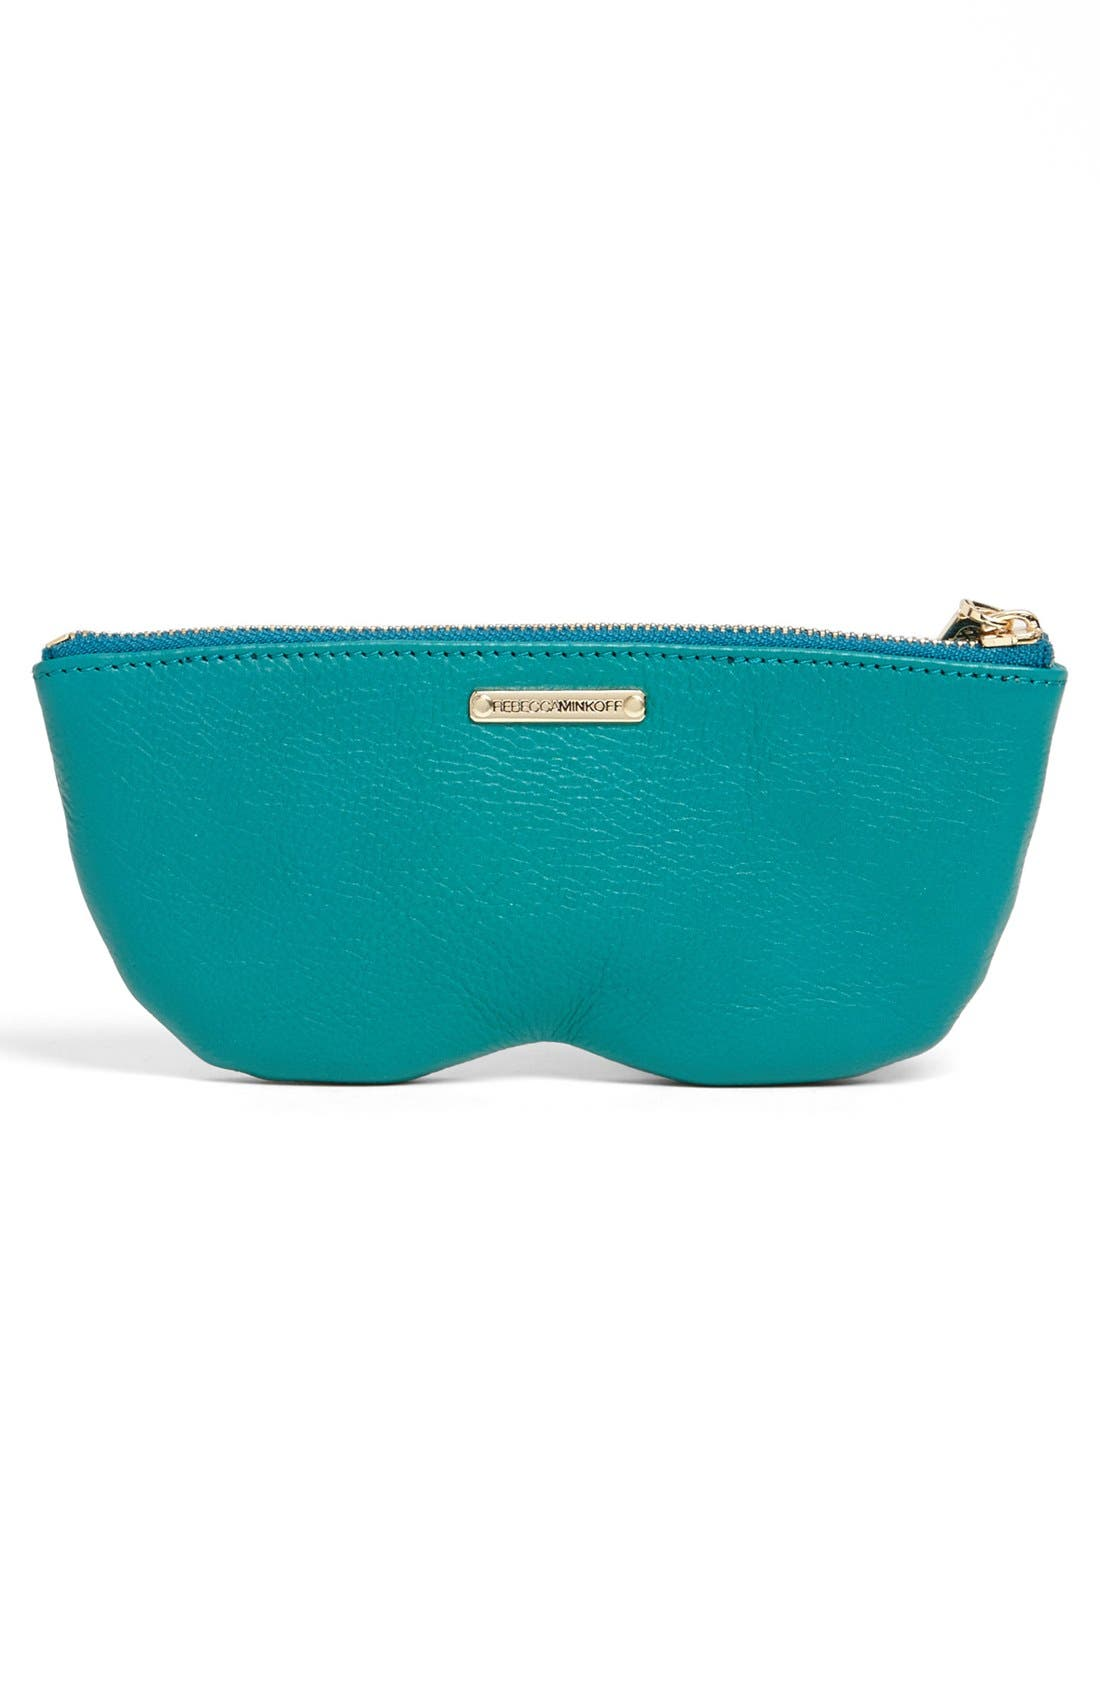 Alternate Image 2  - Rebecca Minkoff Leather Sunglasses Case